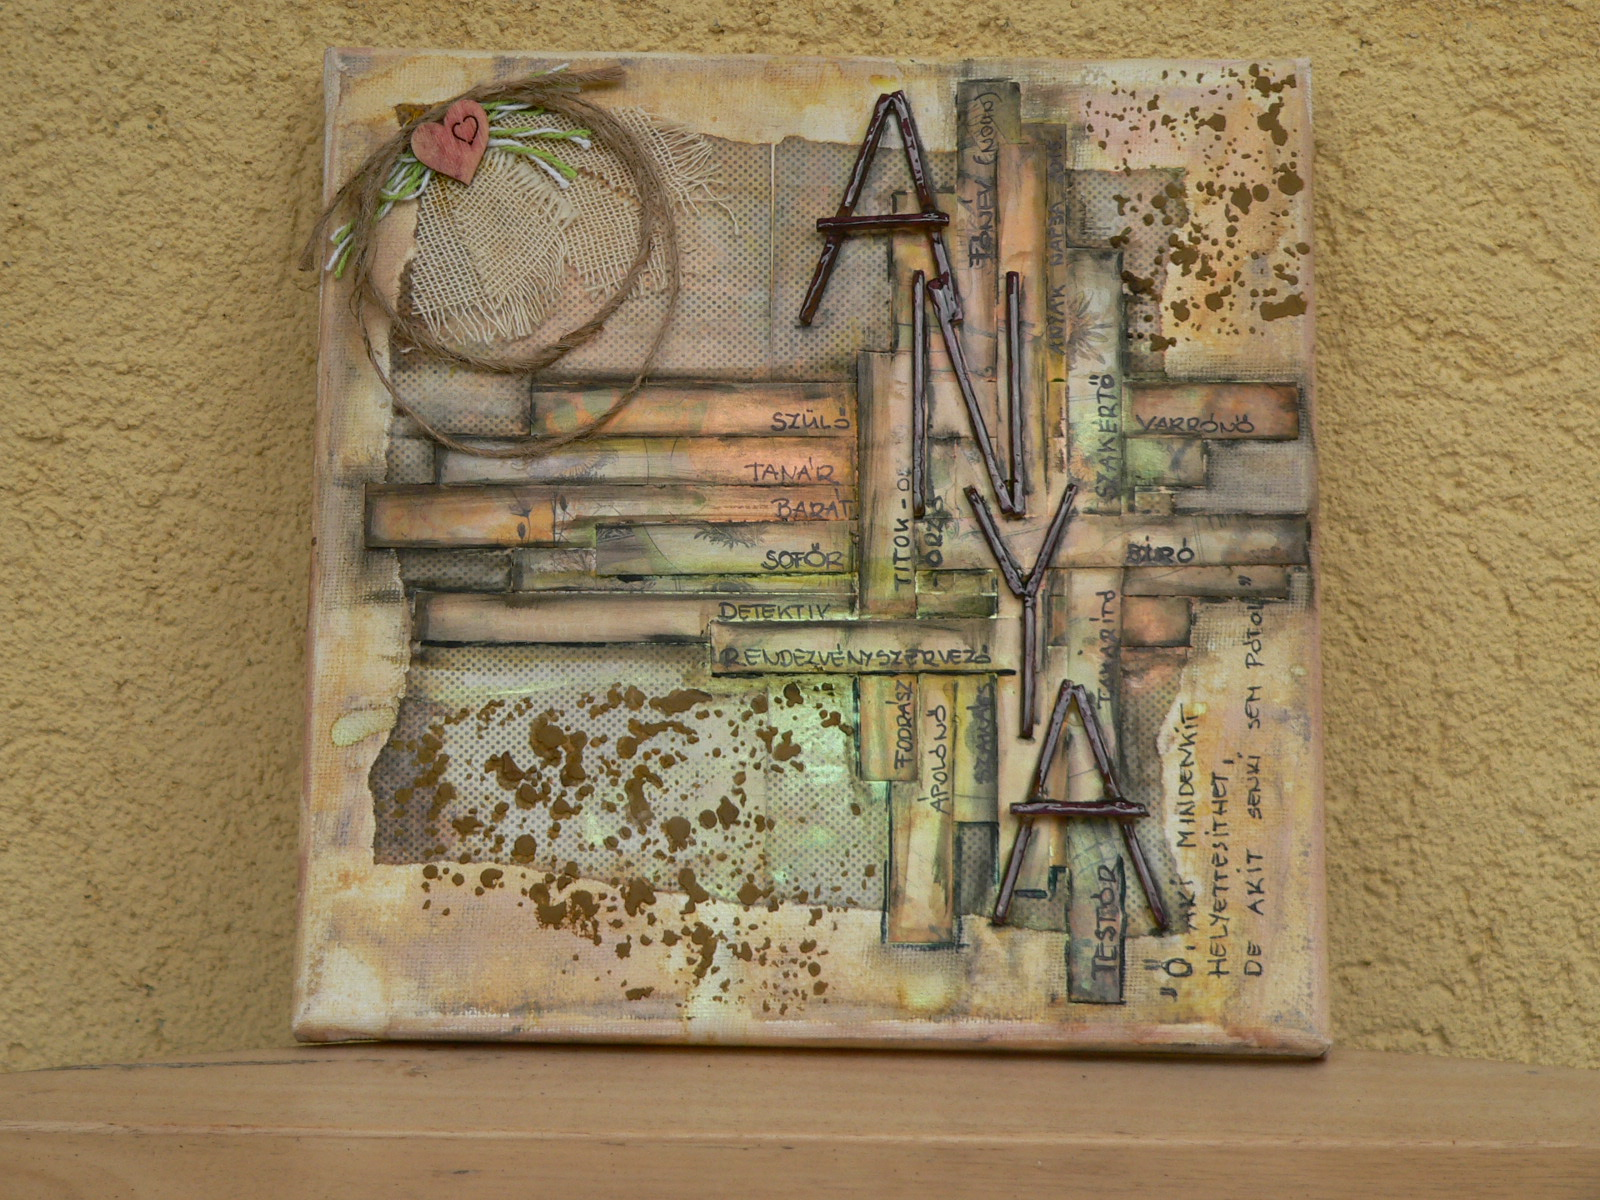 Anyak napja mixed media canvas 2